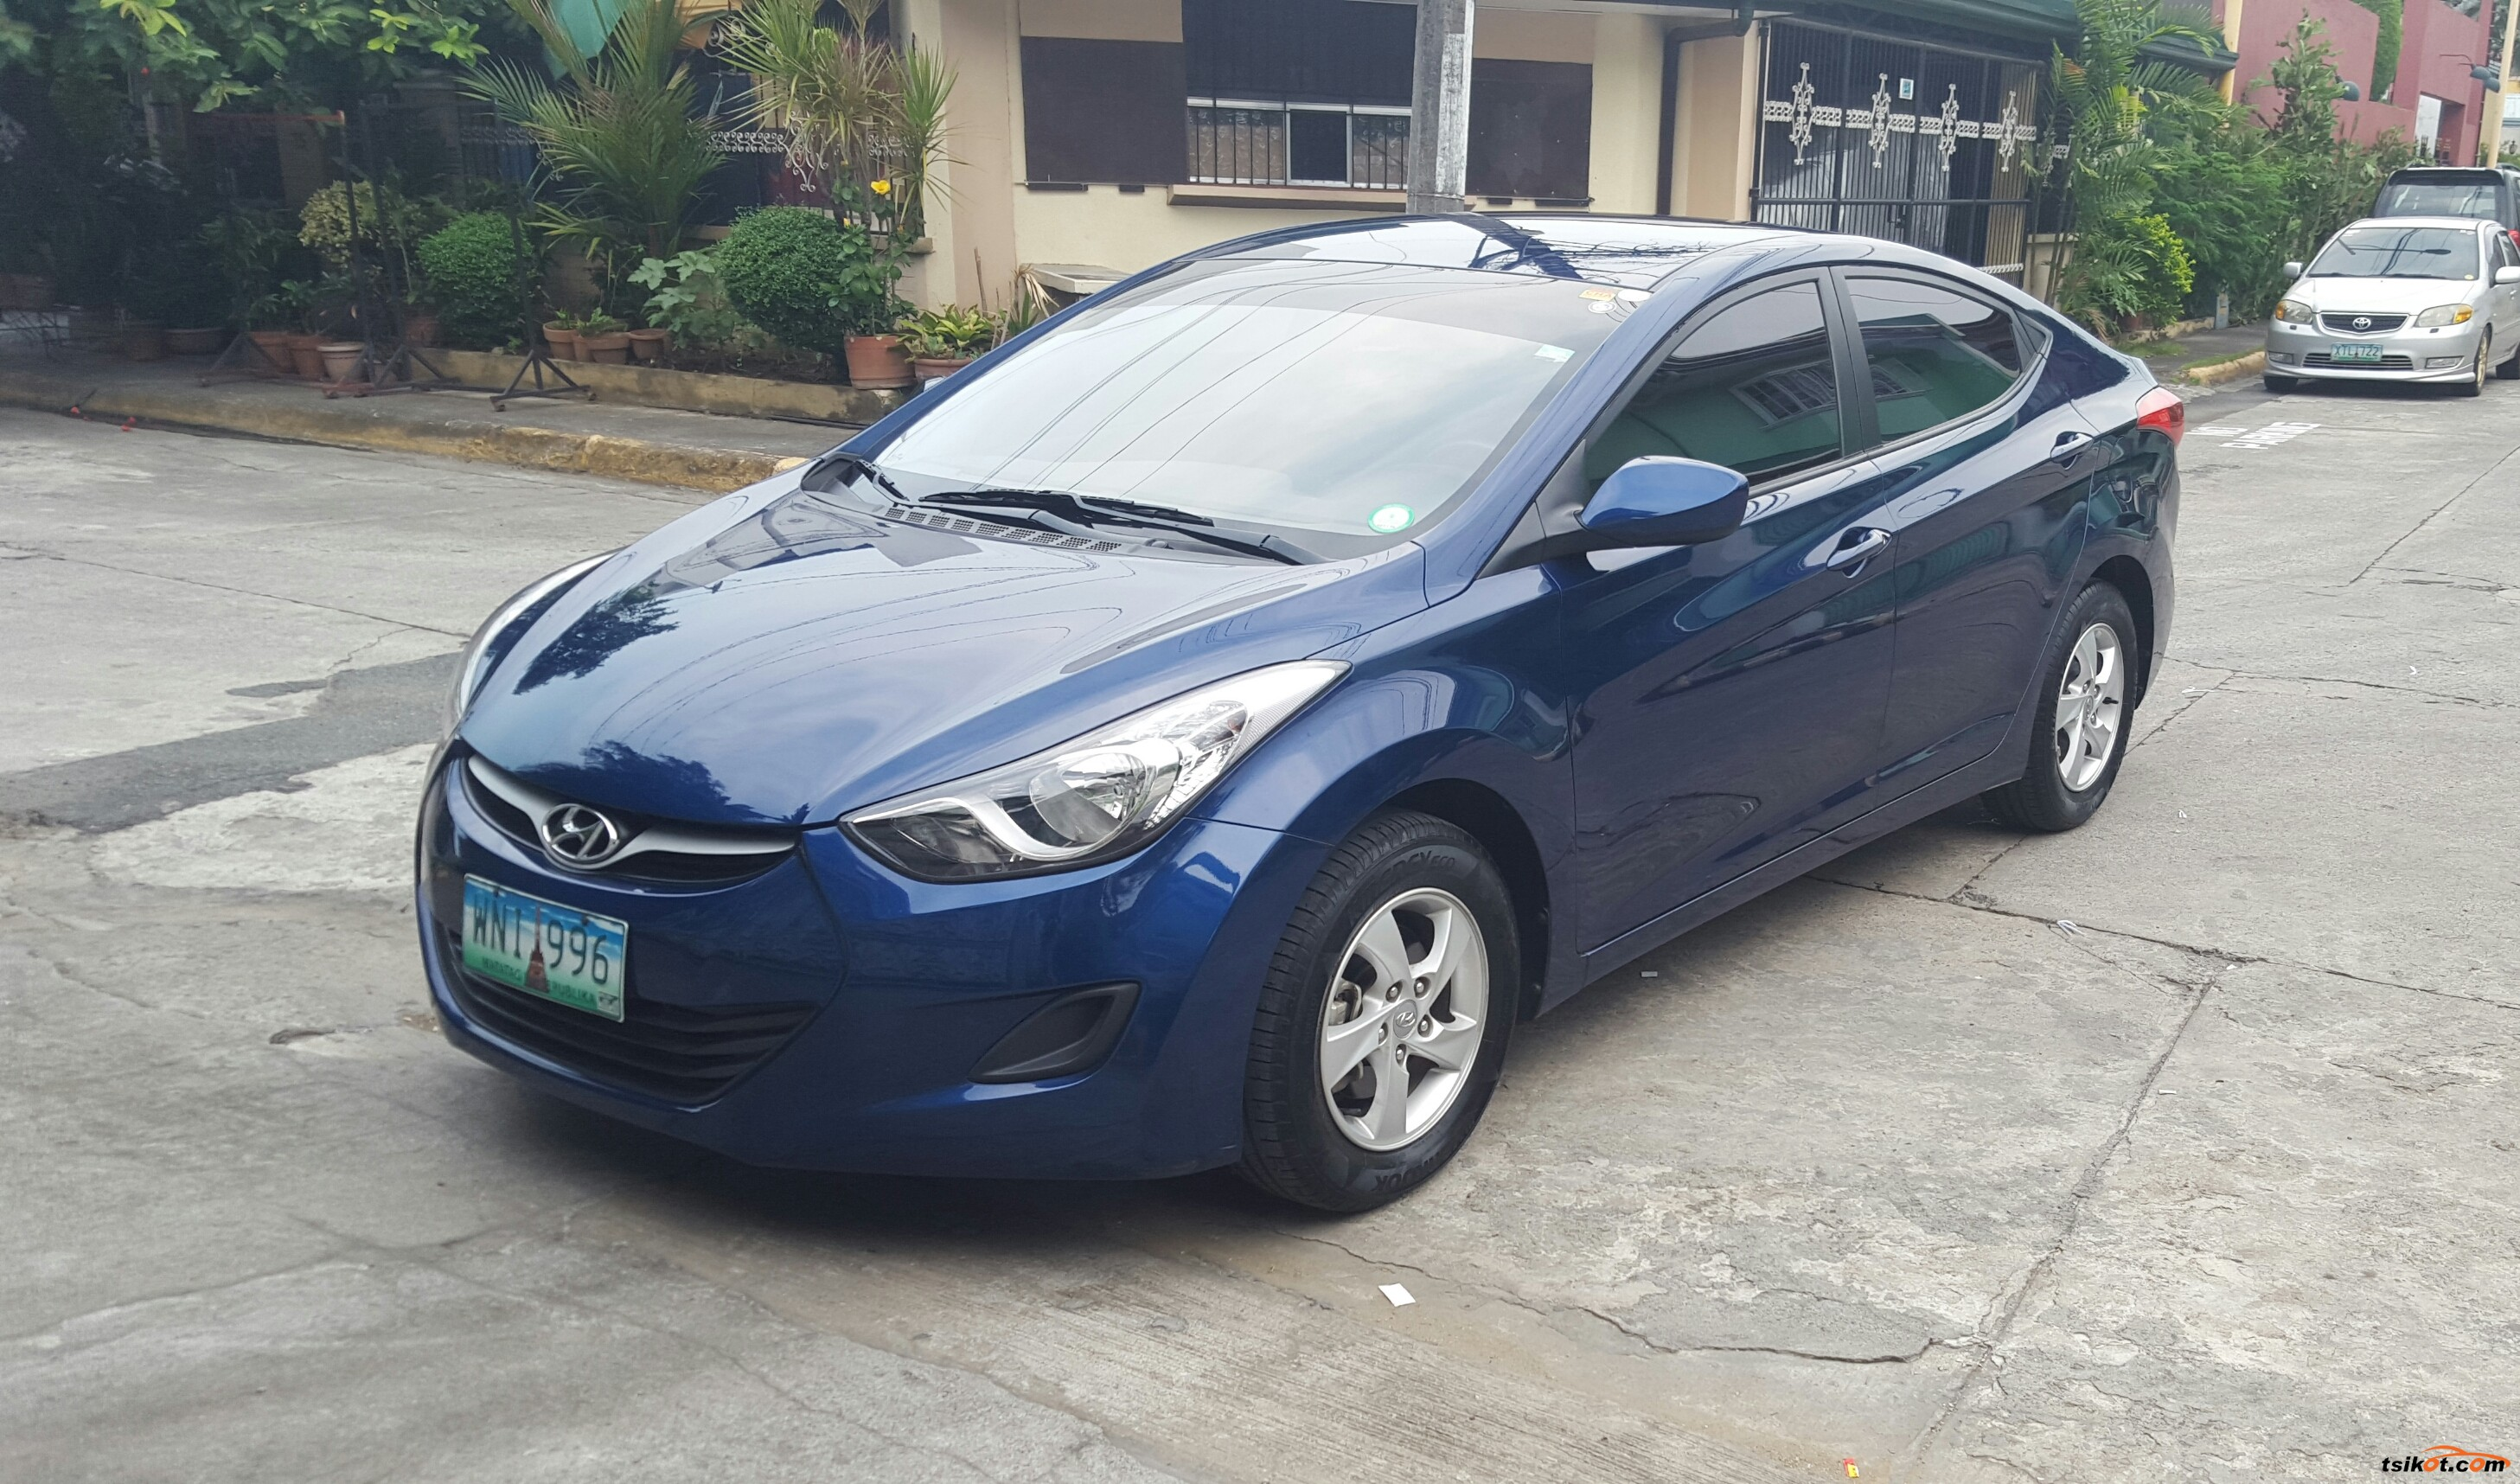 hyundai elantra 2013 car for sale metro manila. Black Bedroom Furniture Sets. Home Design Ideas